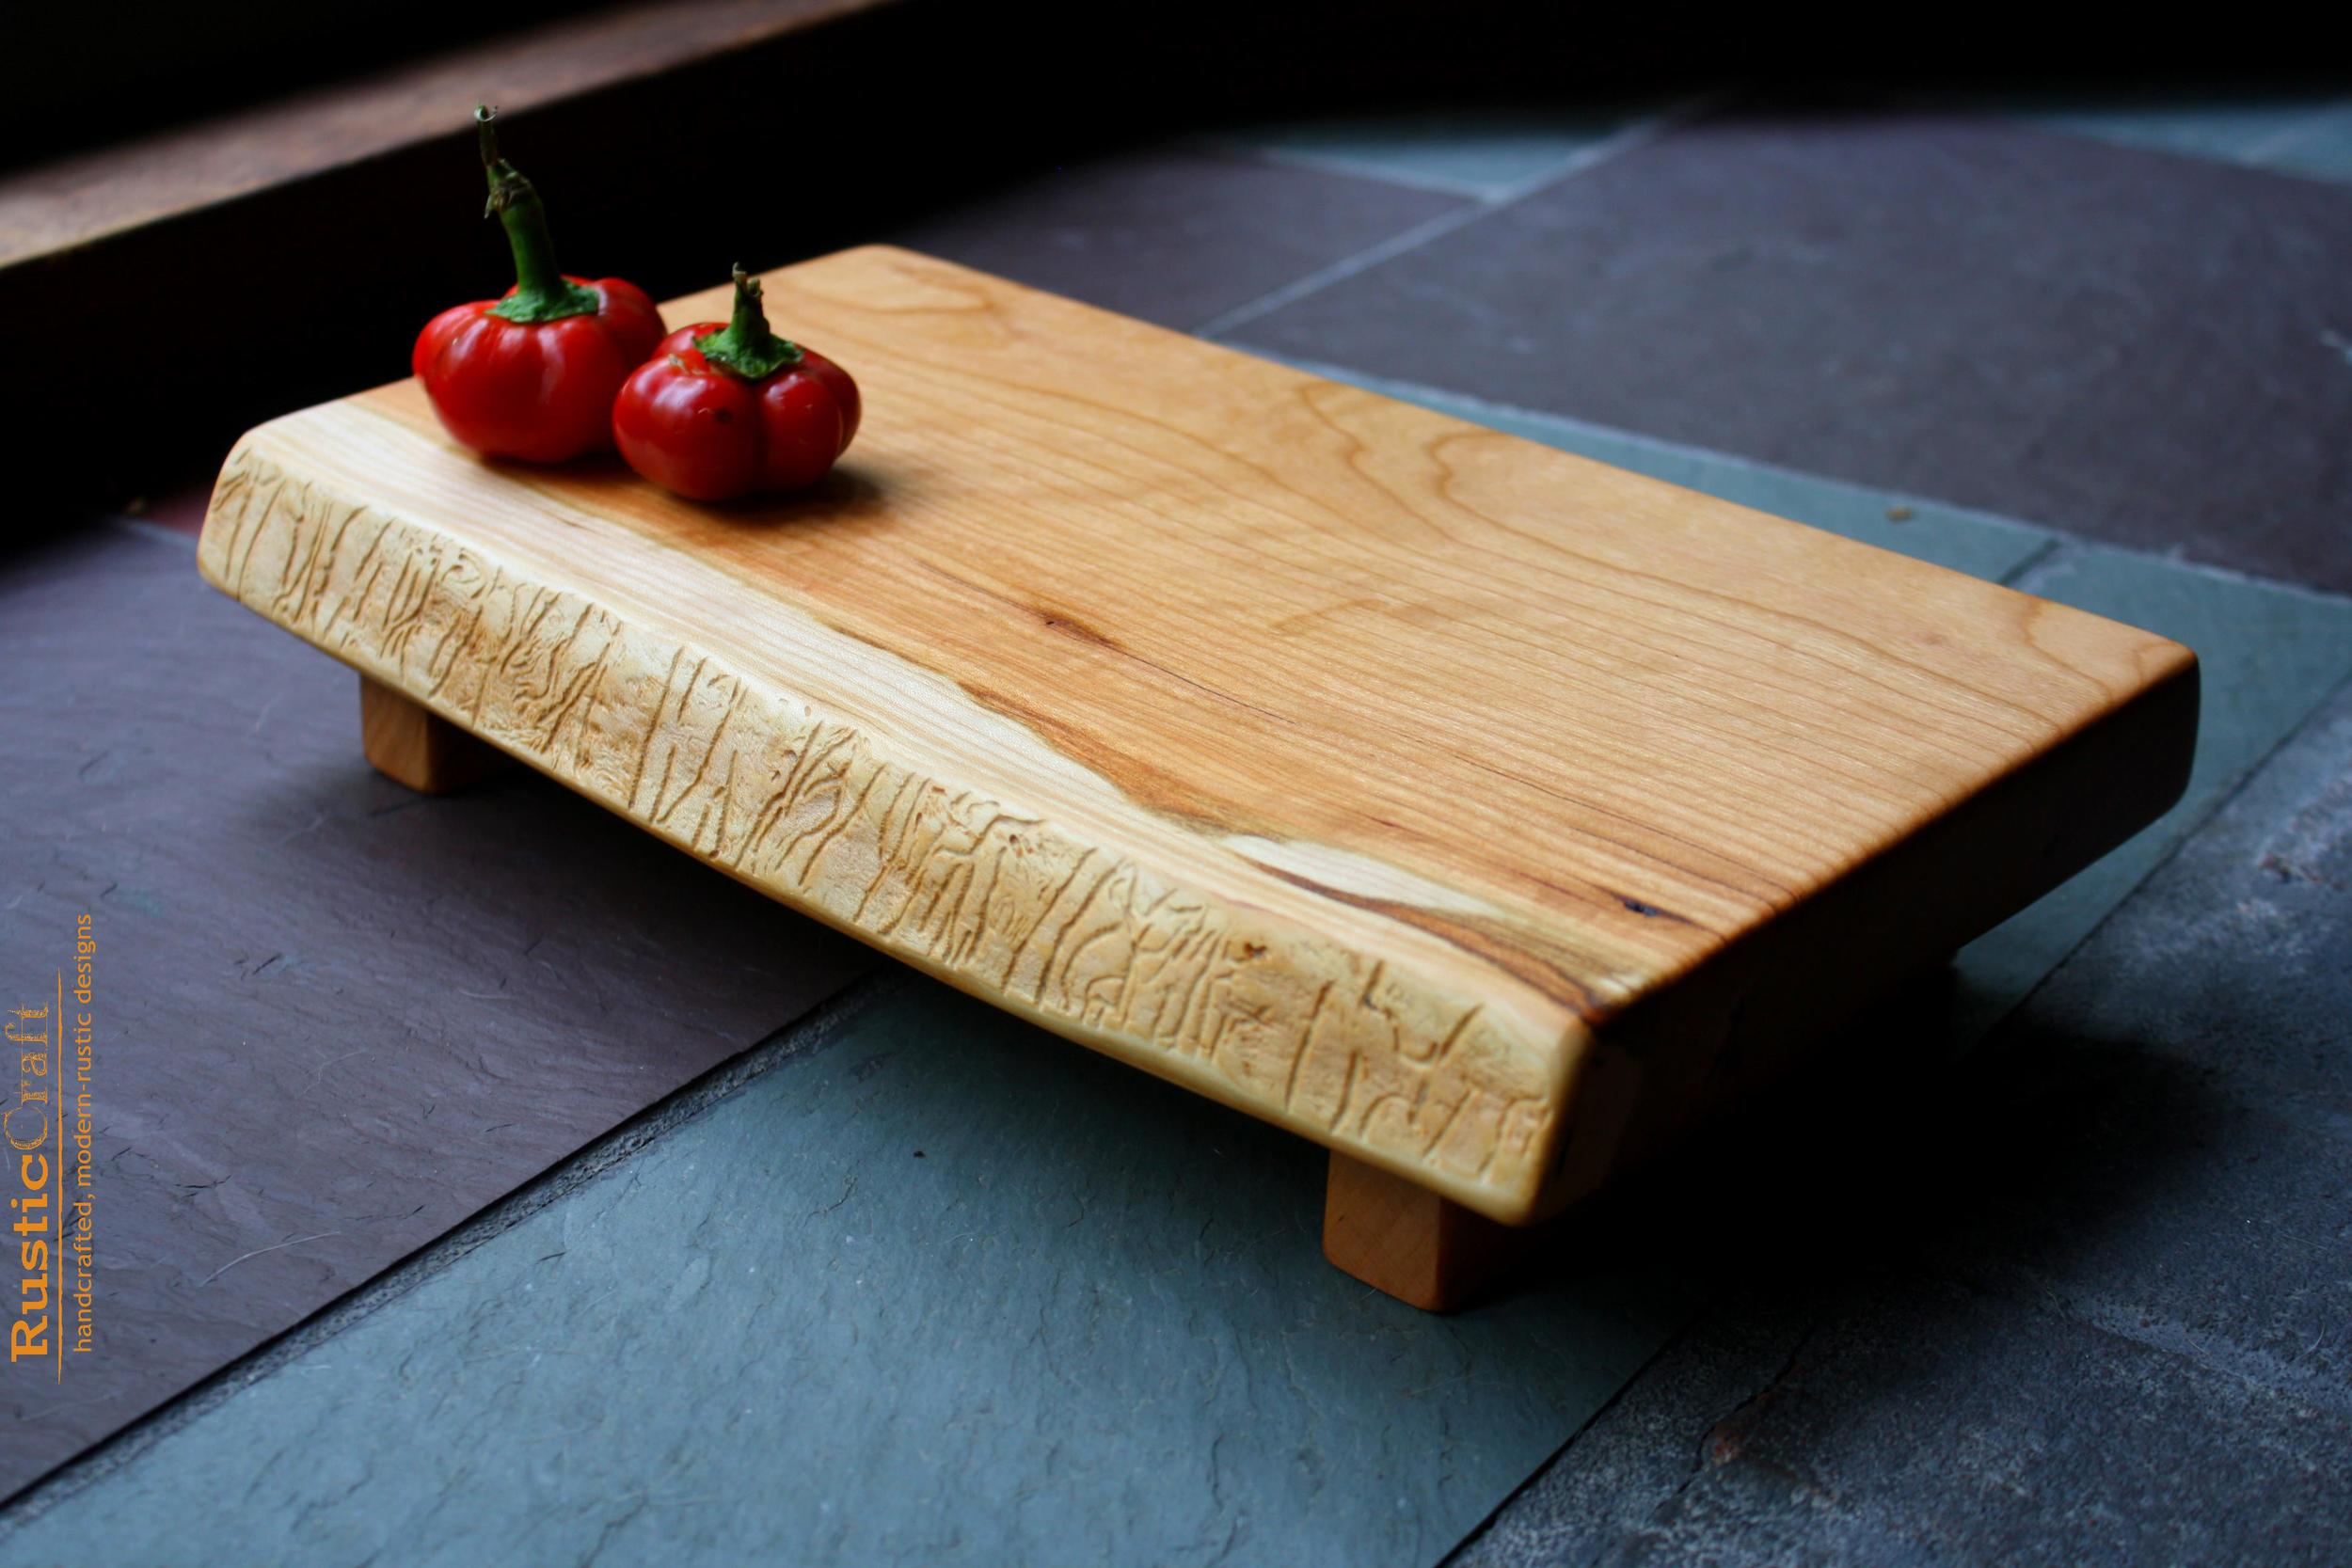 Rustic Wedding Gift- Small Footed Black Cherry Cutting Board -Handcrafted Rustic Beeswax & Oil 415